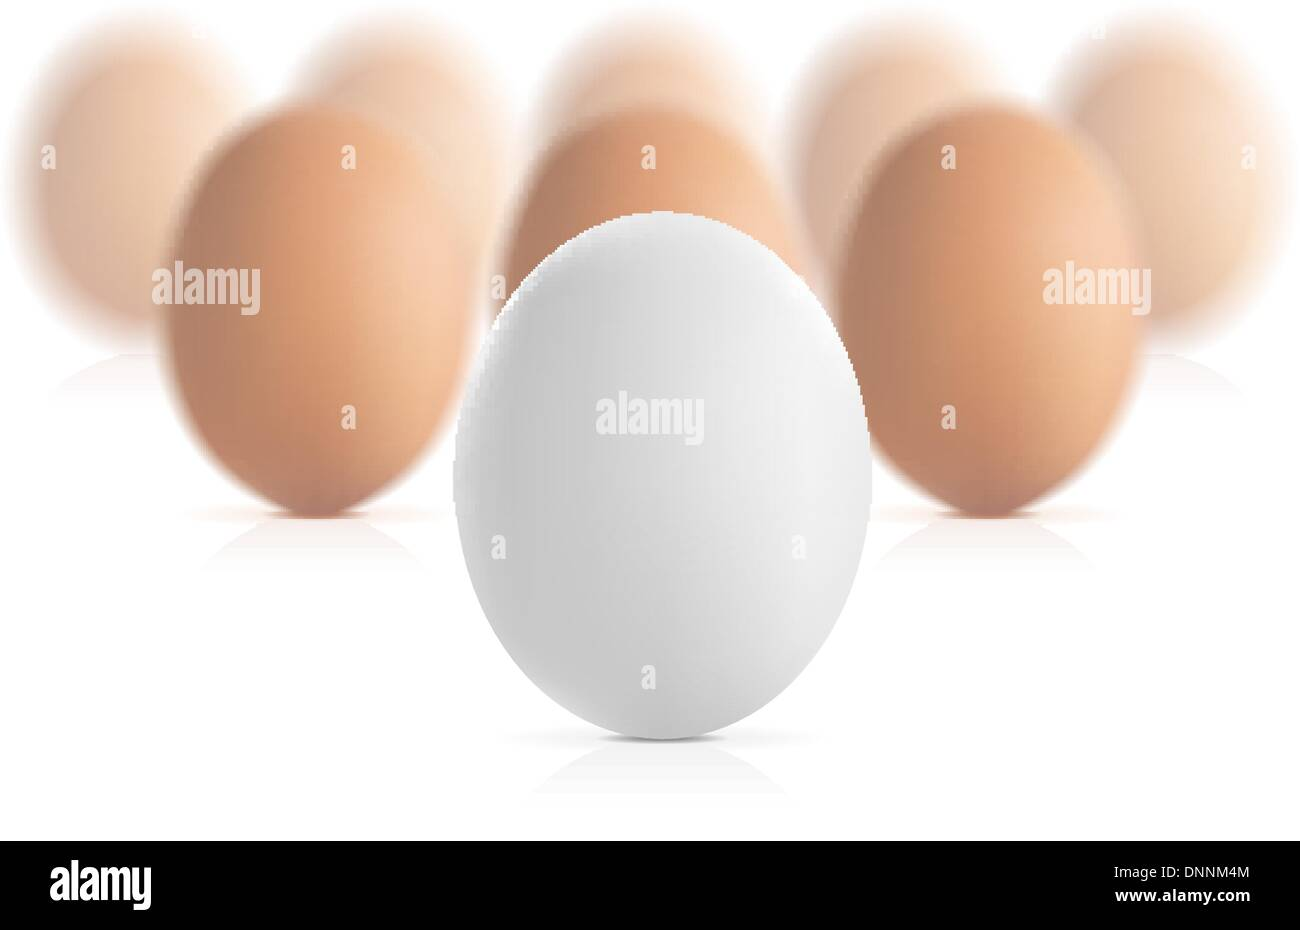 Egg concept vector illustration isolated on white background - Stock Image